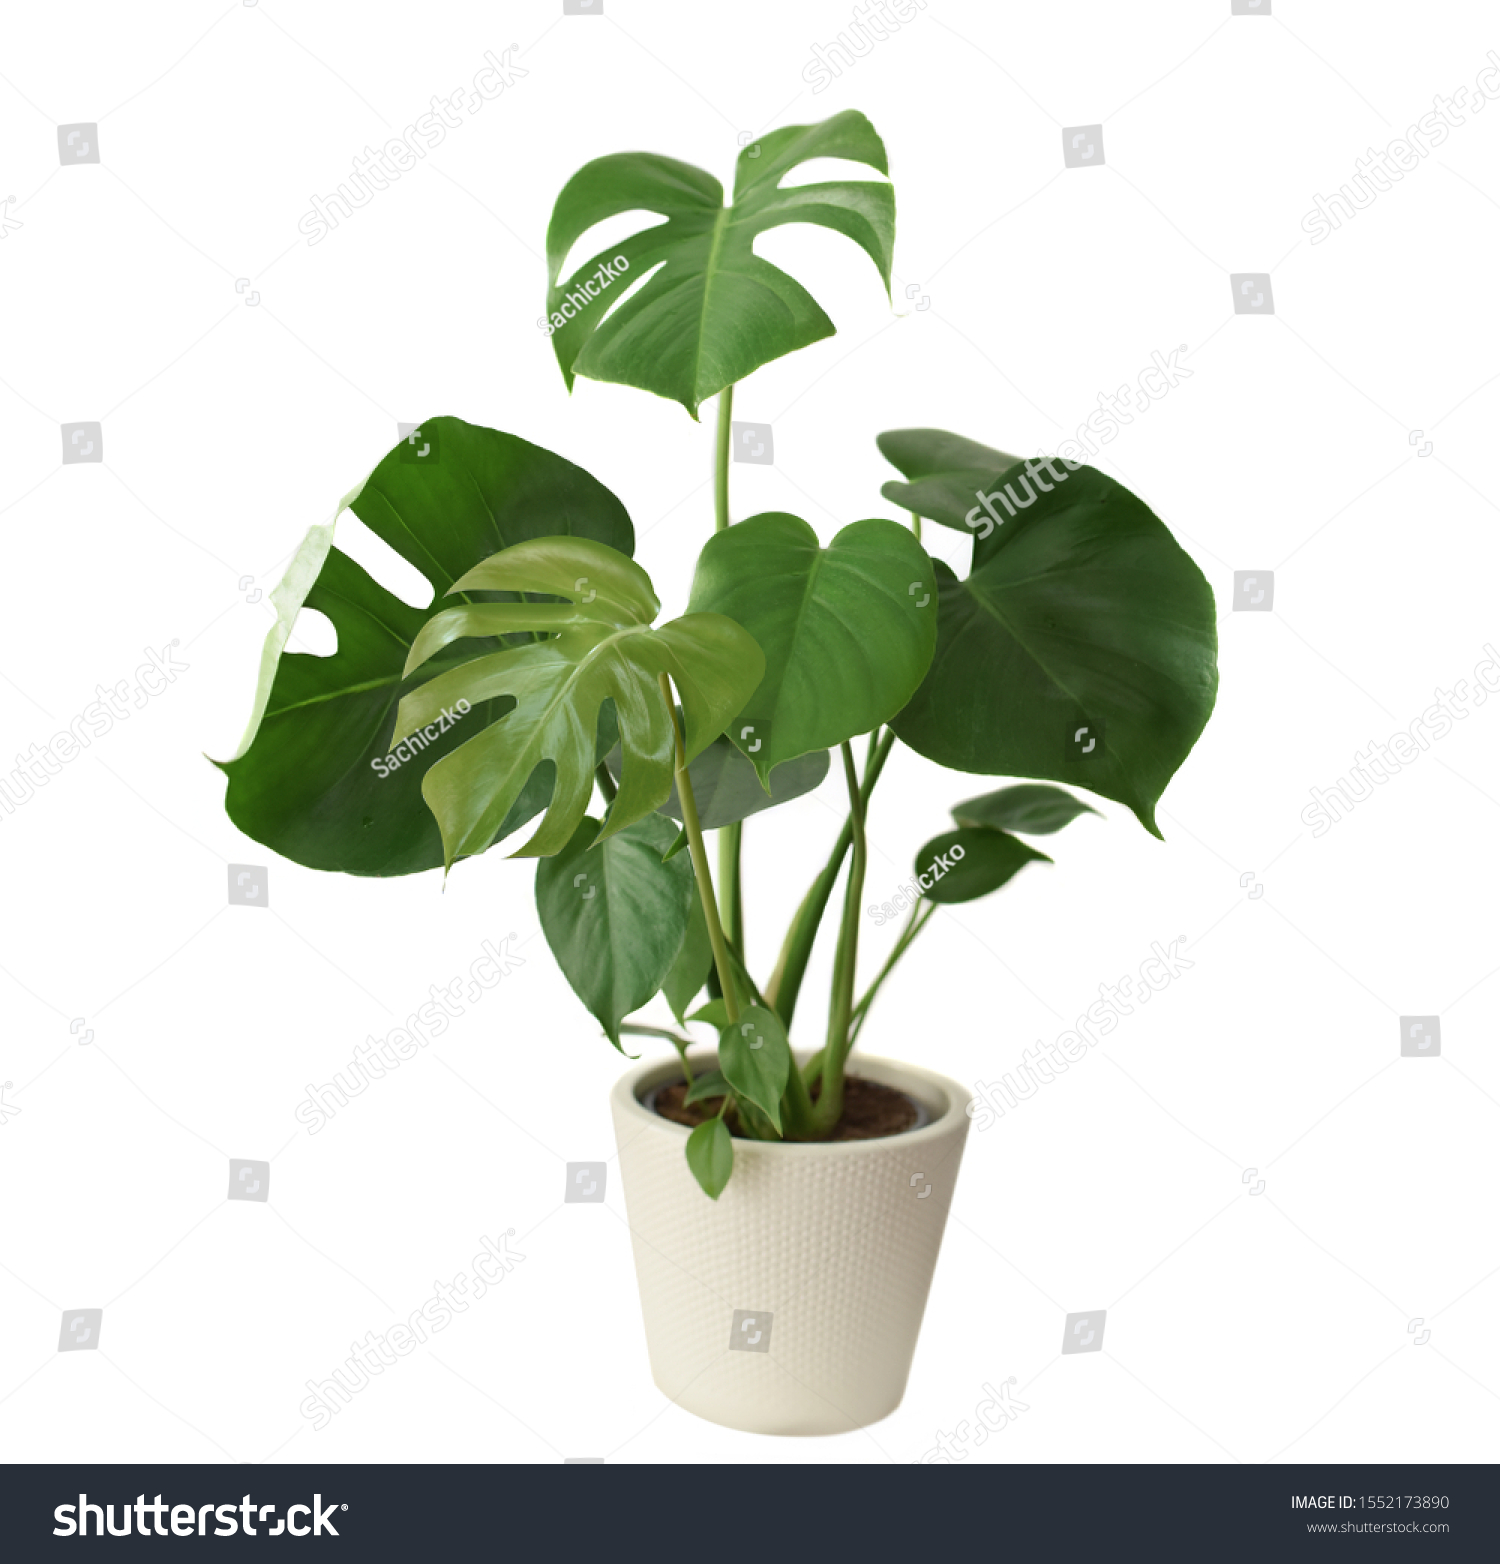 Decorative fresh Monstera deliciosa tree planted in a white ceramic pot isolated on white background. Fresh Swiss Cheese Plant with large glossy green leaves.  #1552173890